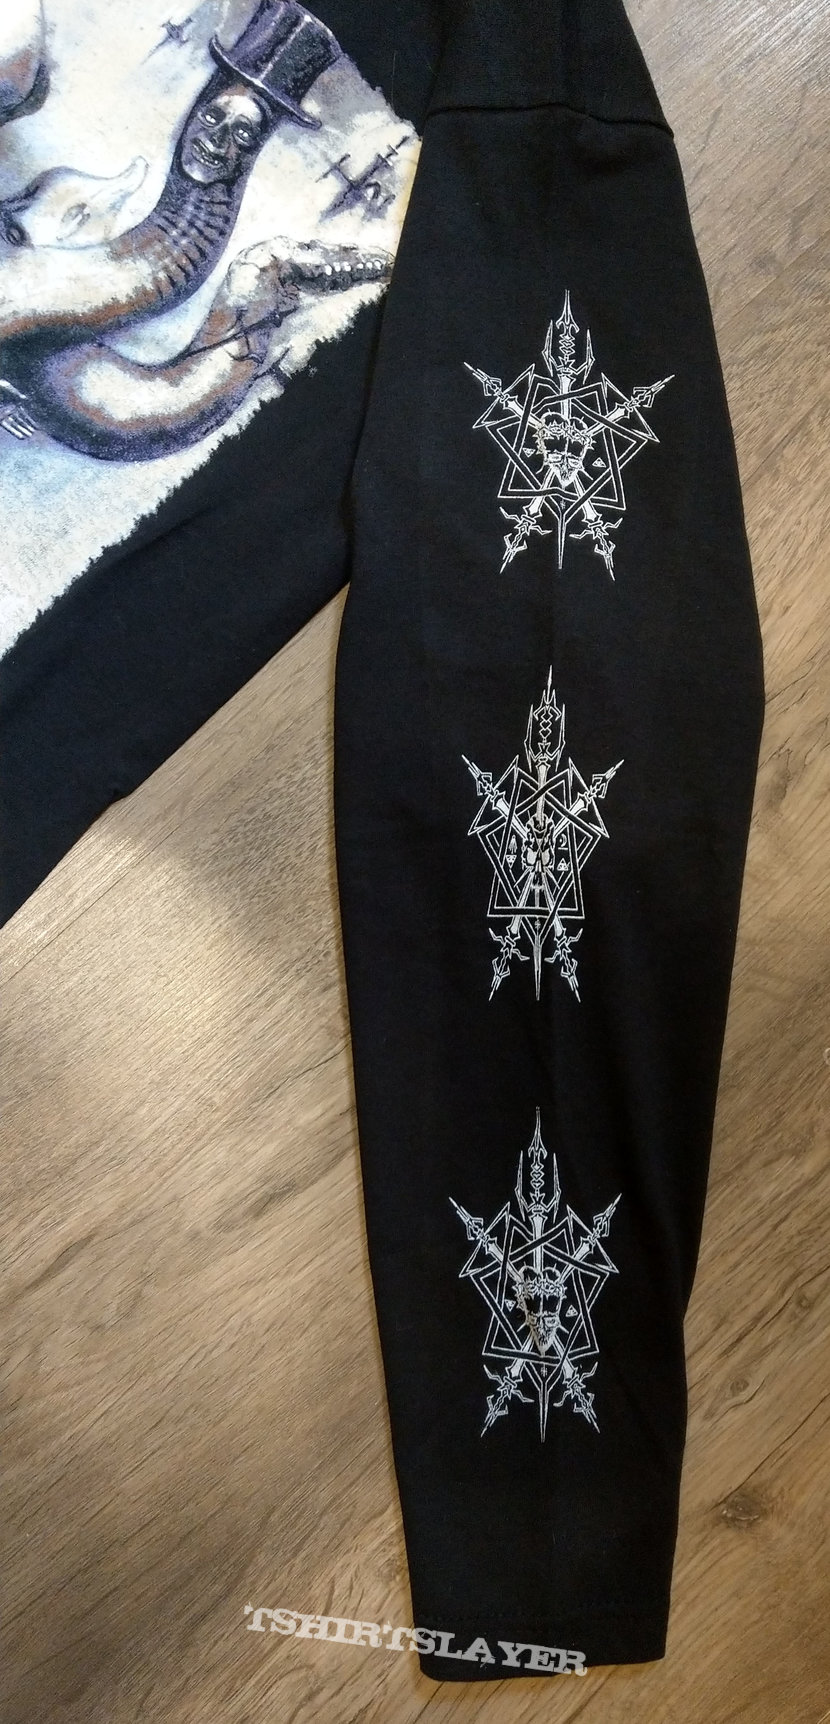 CELTIC FROST - To Mega Therion (Longsleeve TS)